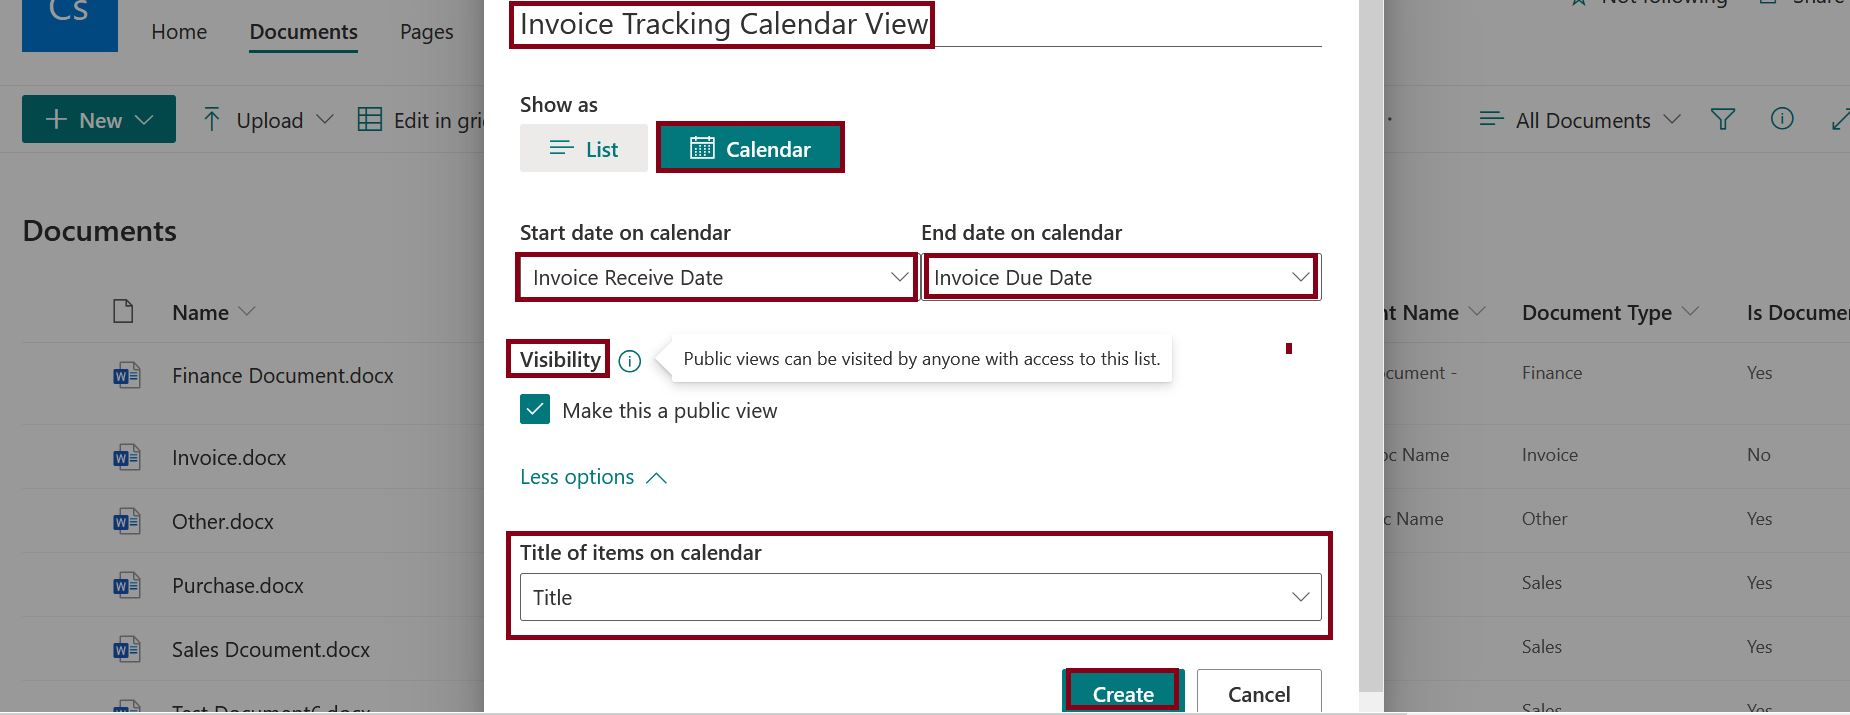 Visibility settings in calendar view creation - modern SharePoint Online list-library